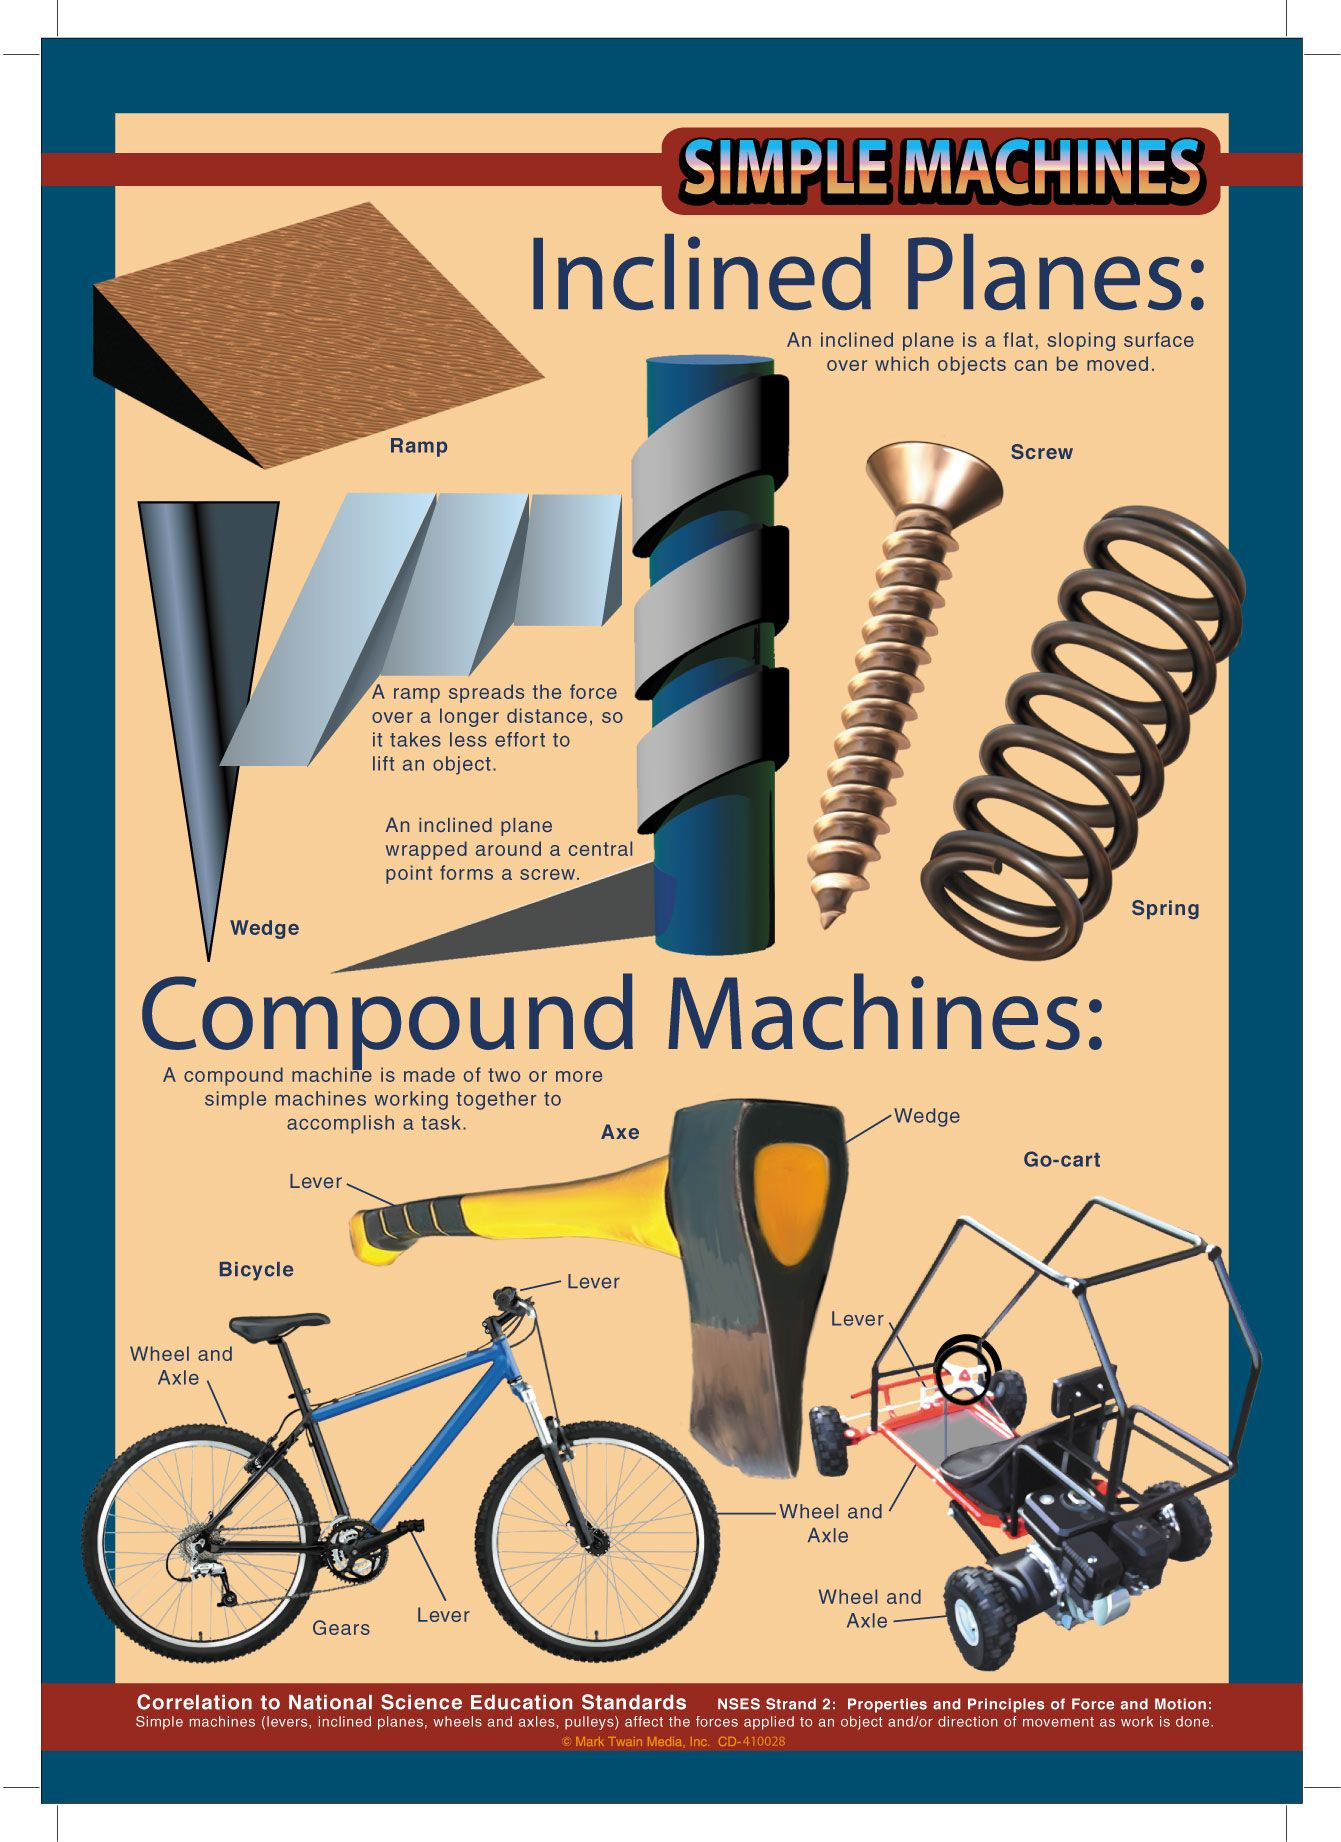 Simple Machines Inclined Plane Wedge And Screw Simple